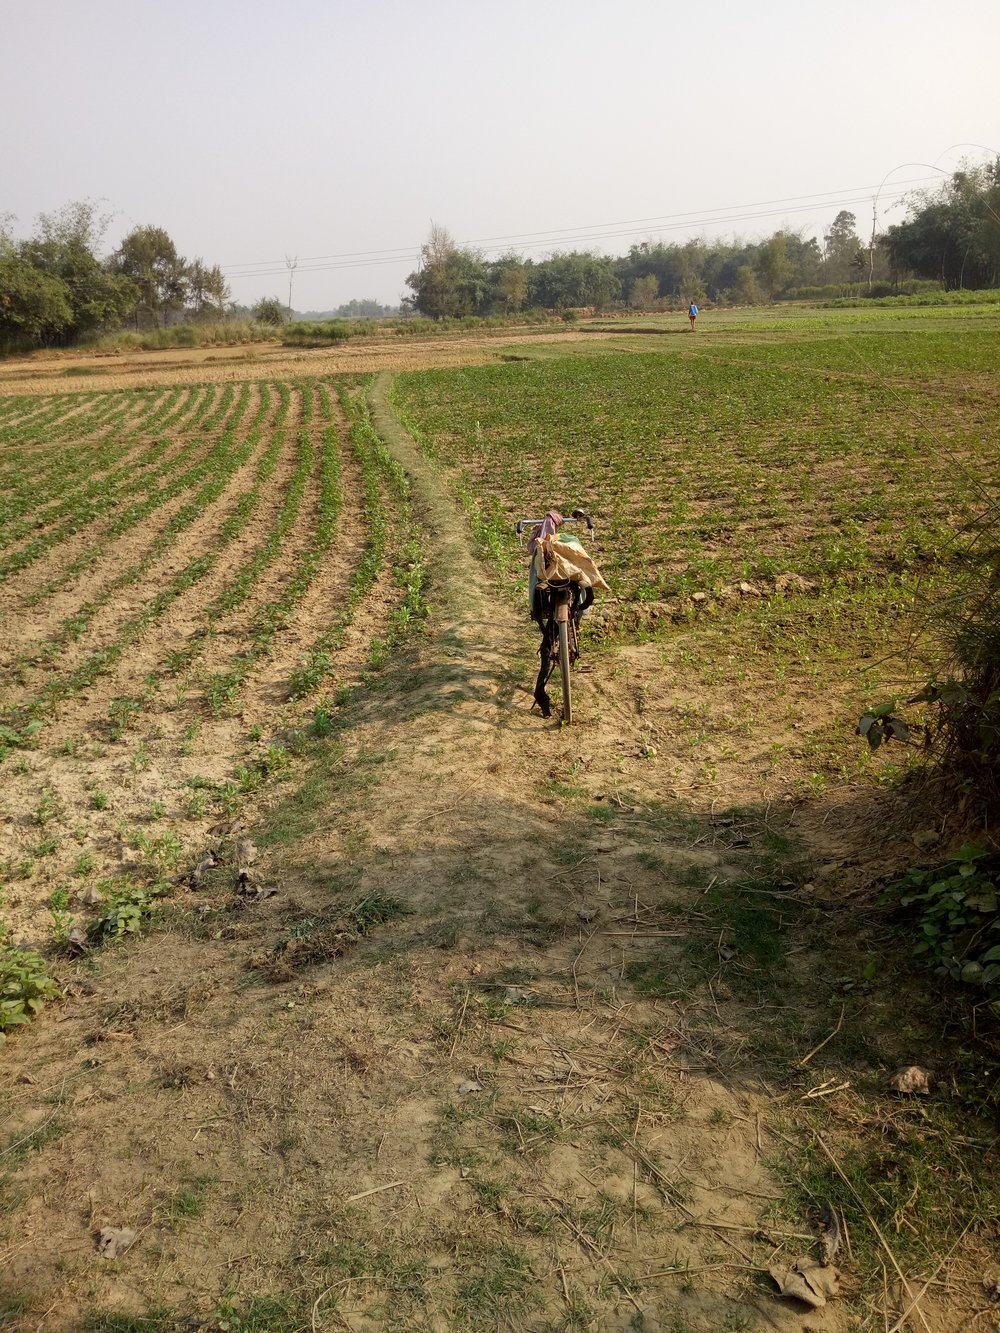 Travel in rural Bihar can be exhausting and tedious. Chetna volunteers like Saroj spend much of their time traveling by bicycle or motorbike to different sites or villages - Photo by Sarah K.